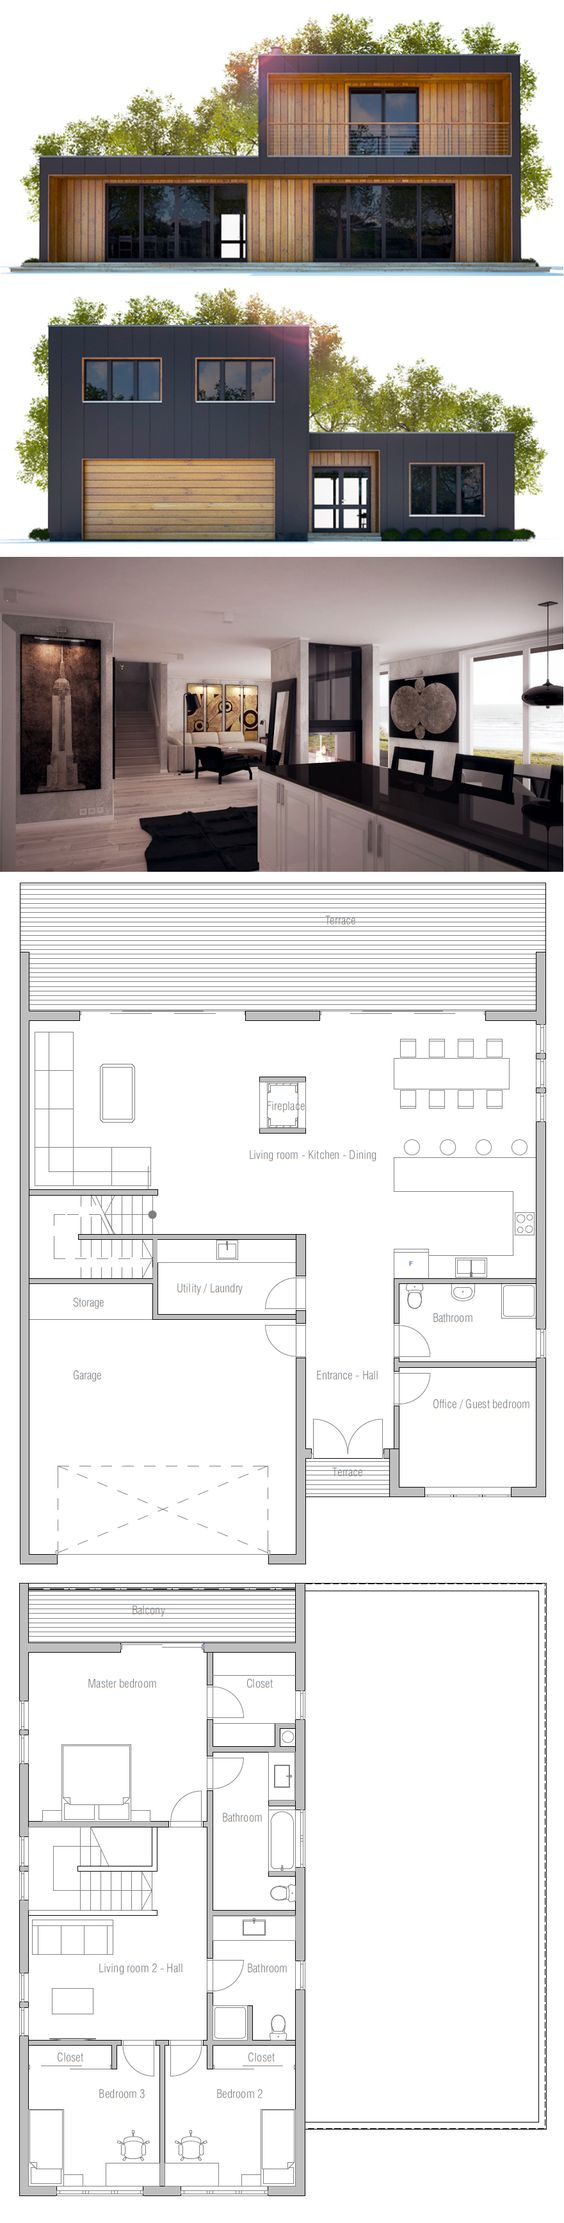 Offices, House and hang'e 3 on Pinterest - ^